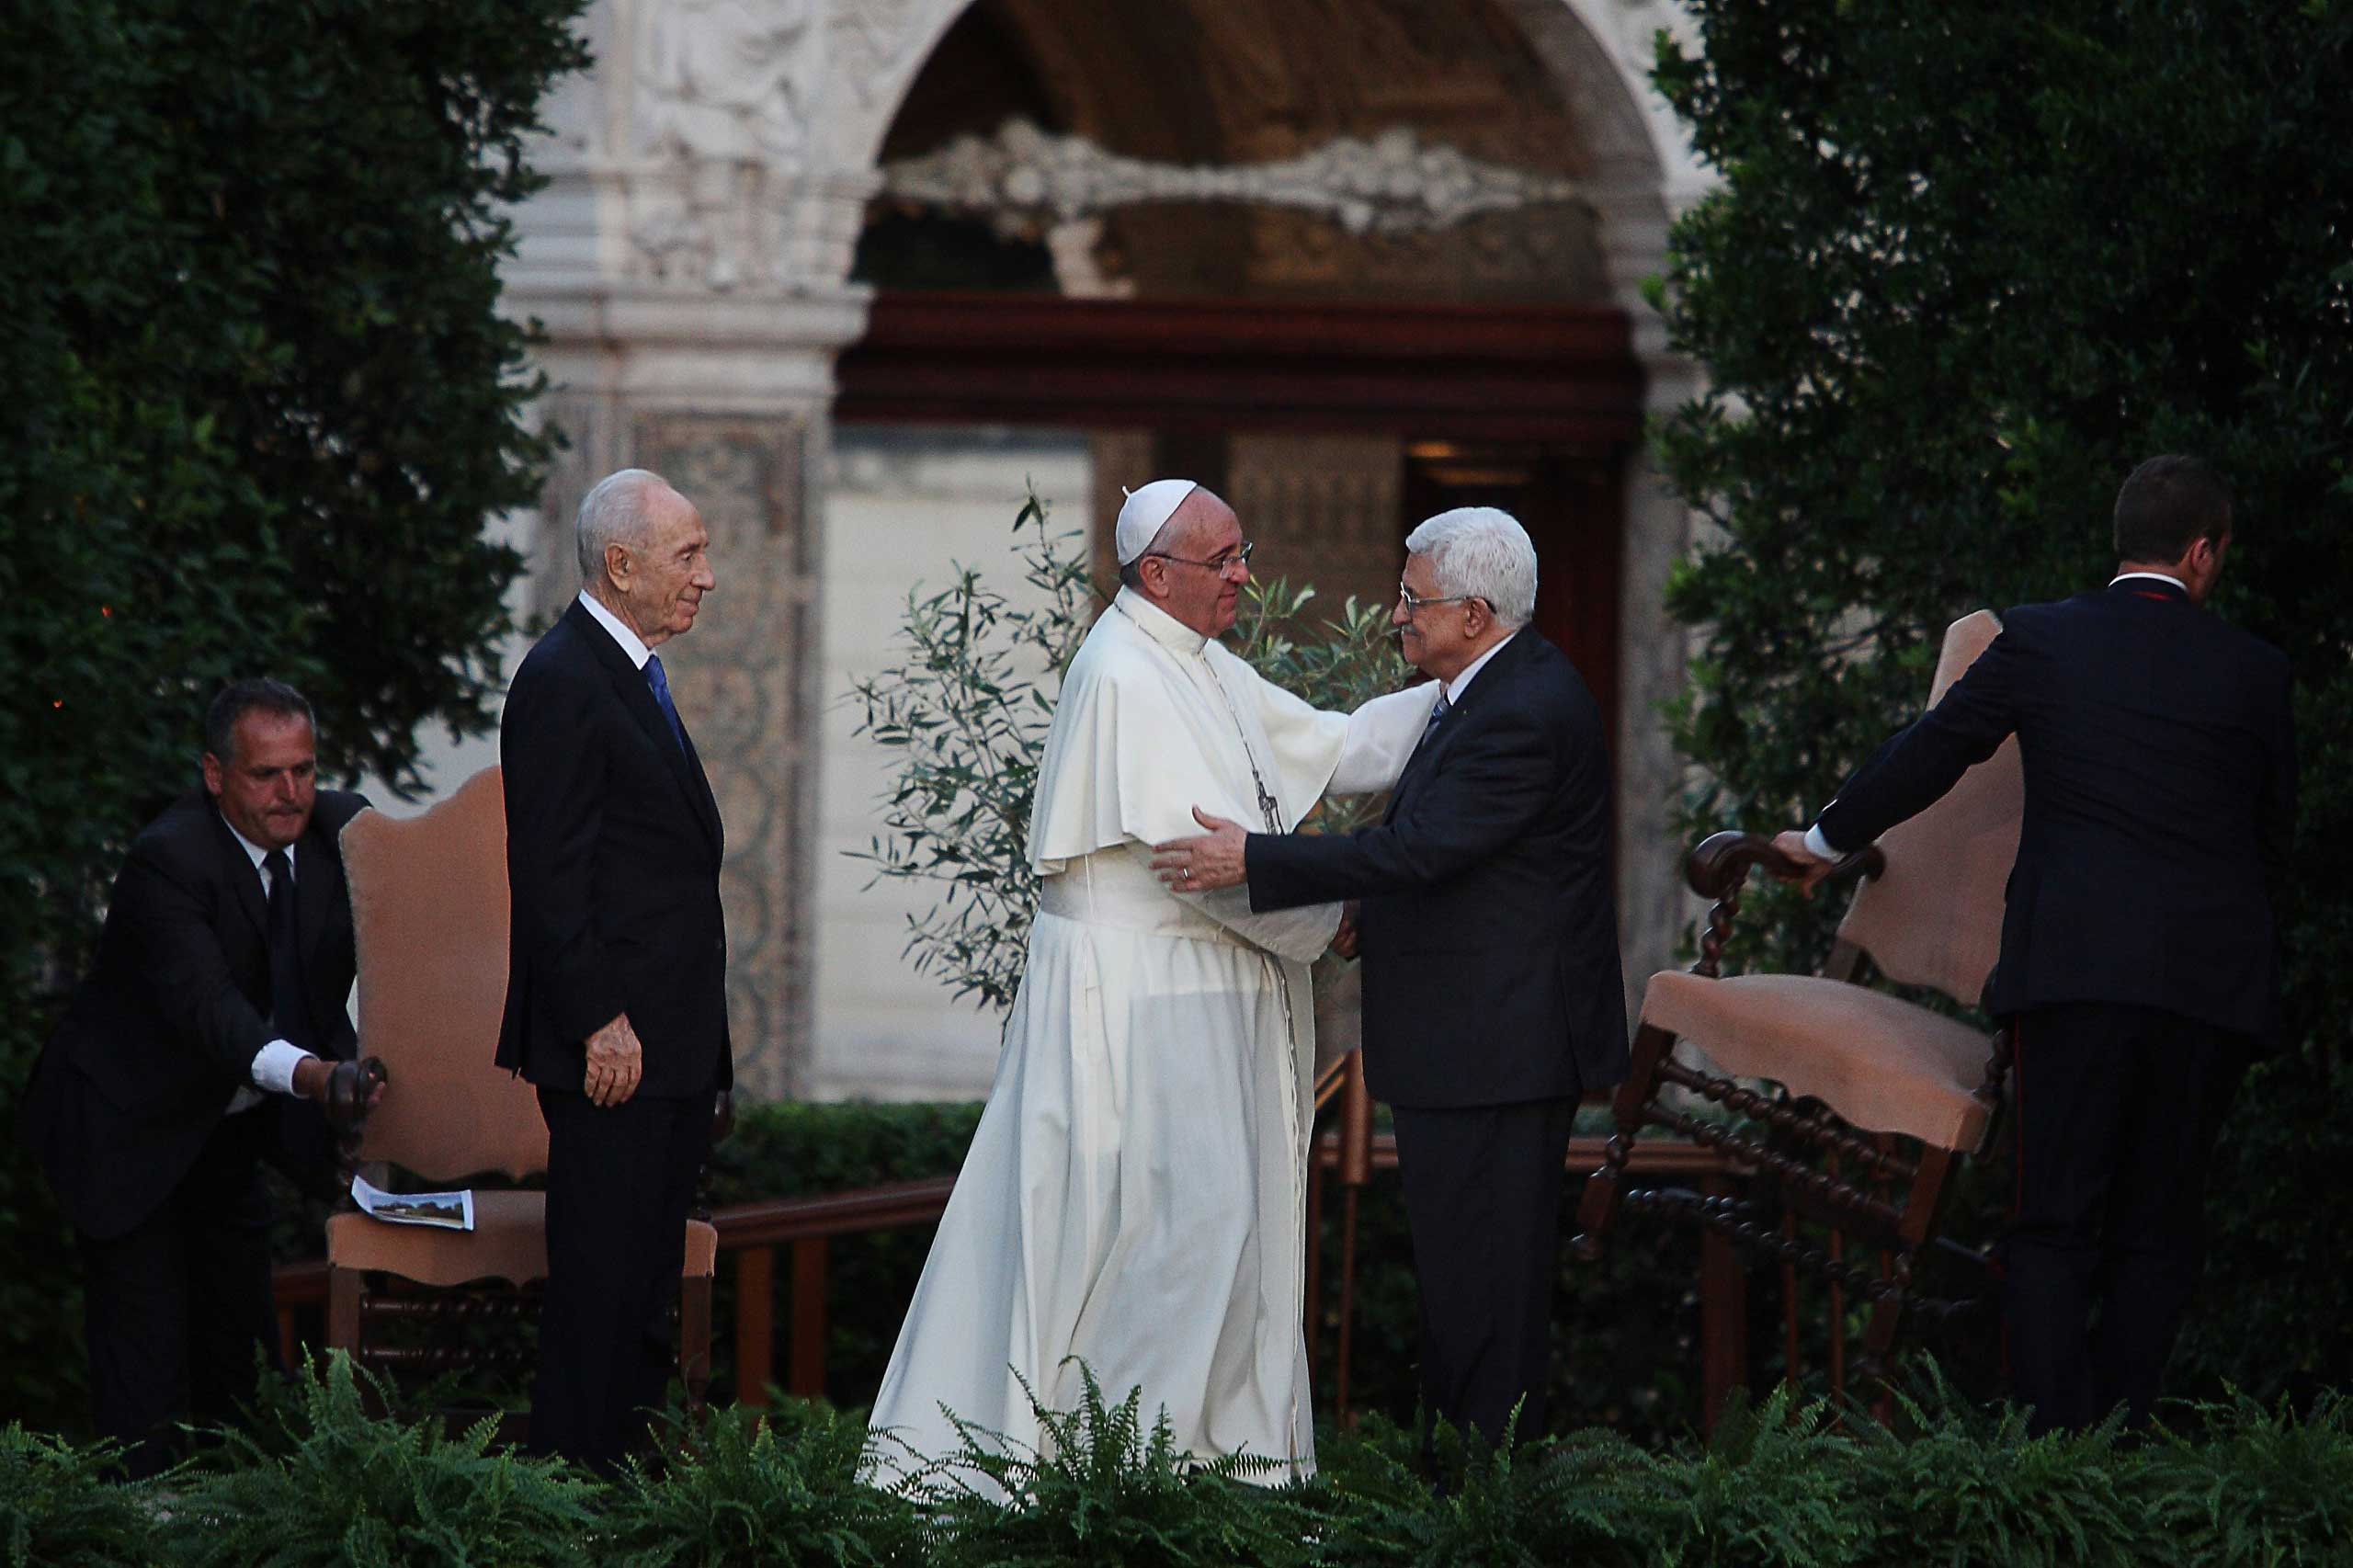 Pope Francis with Palestinian leader Mahmud Abbas and Israeli President Shimon Peres during a joint peace prayer at the Vatican Gardens, Vatican City, June 8, 2014.